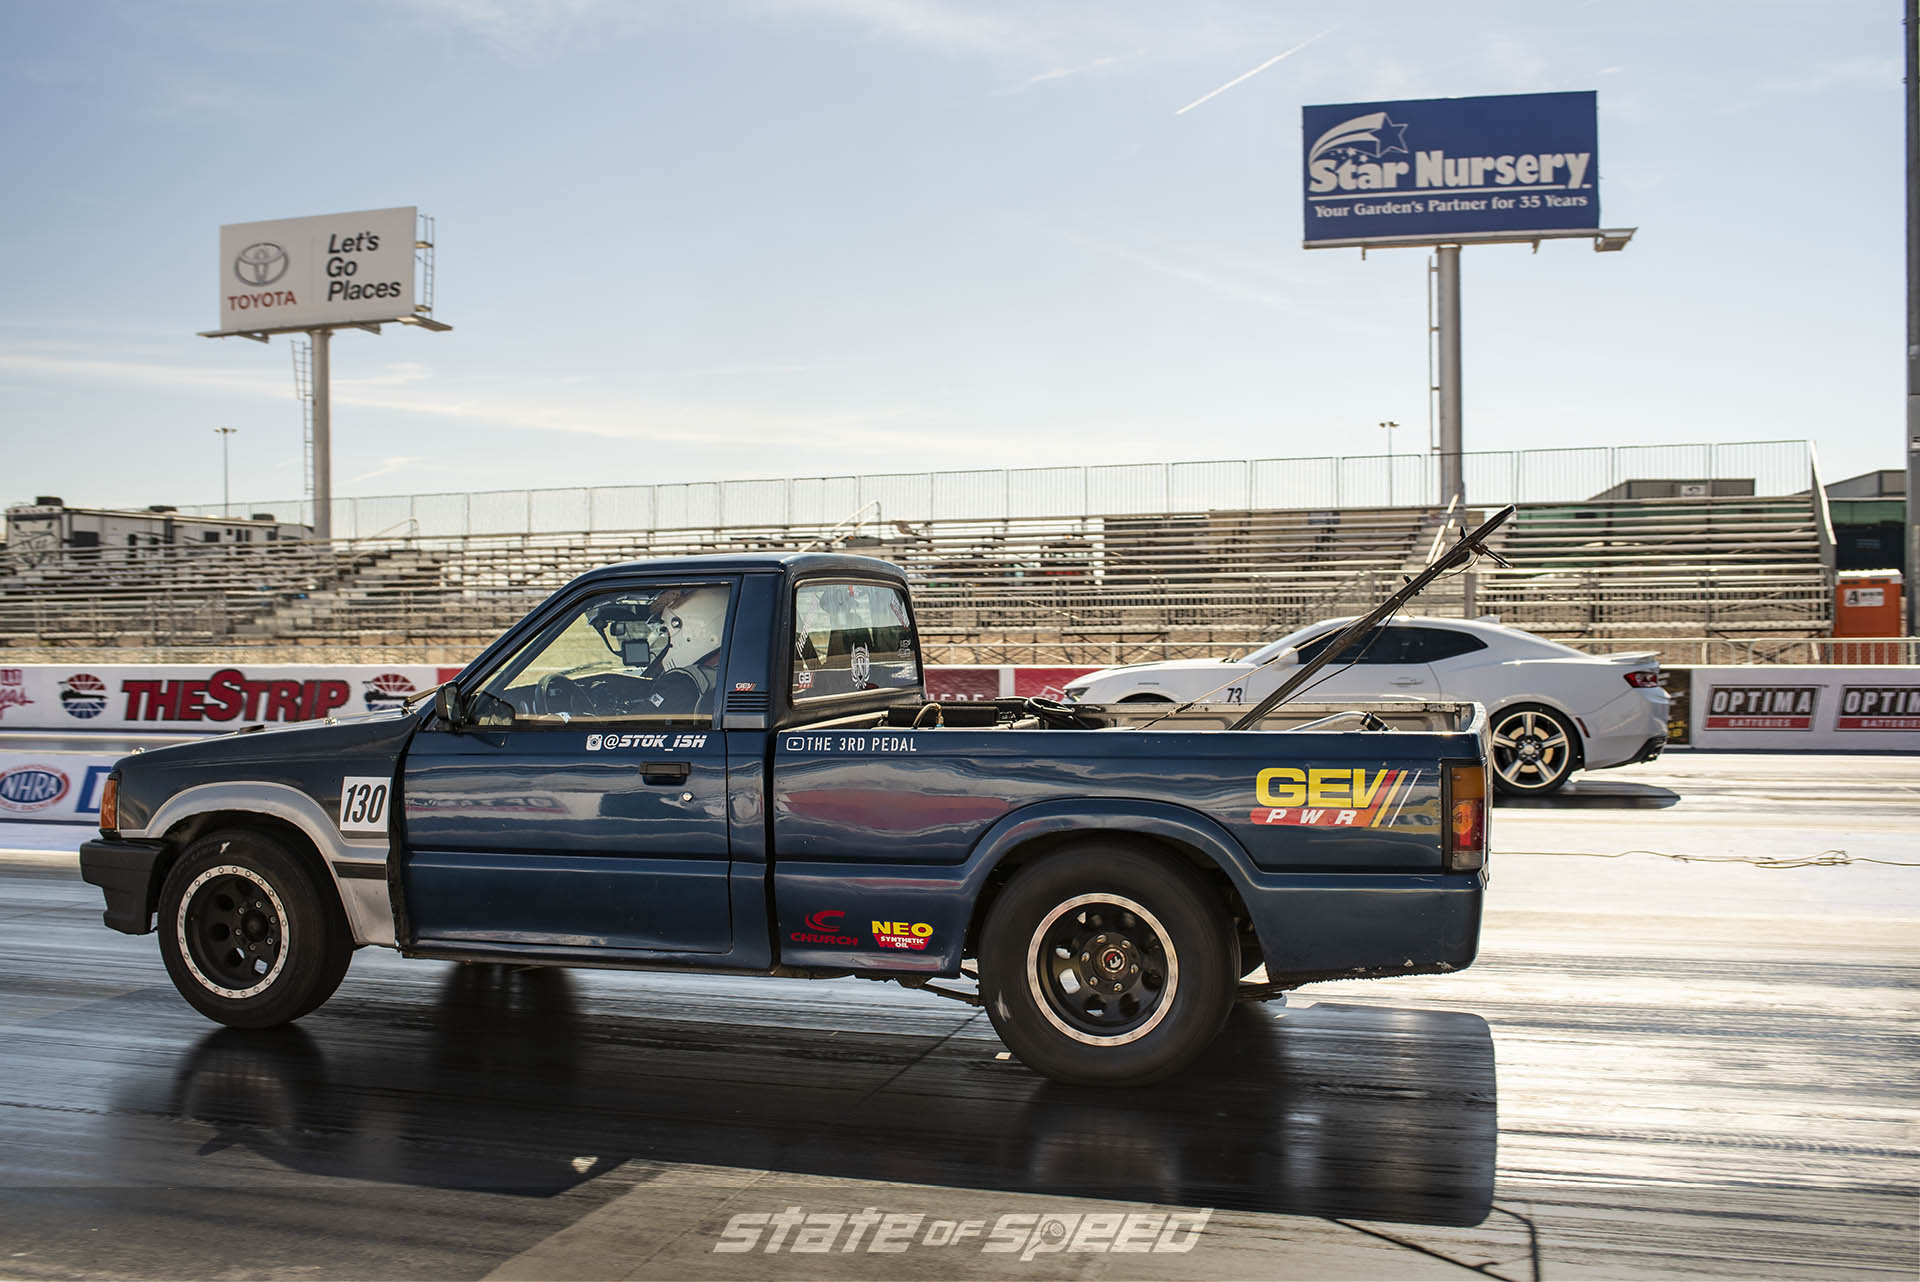 Truck versus Ford Mustang handicapped racing at the dragstrip